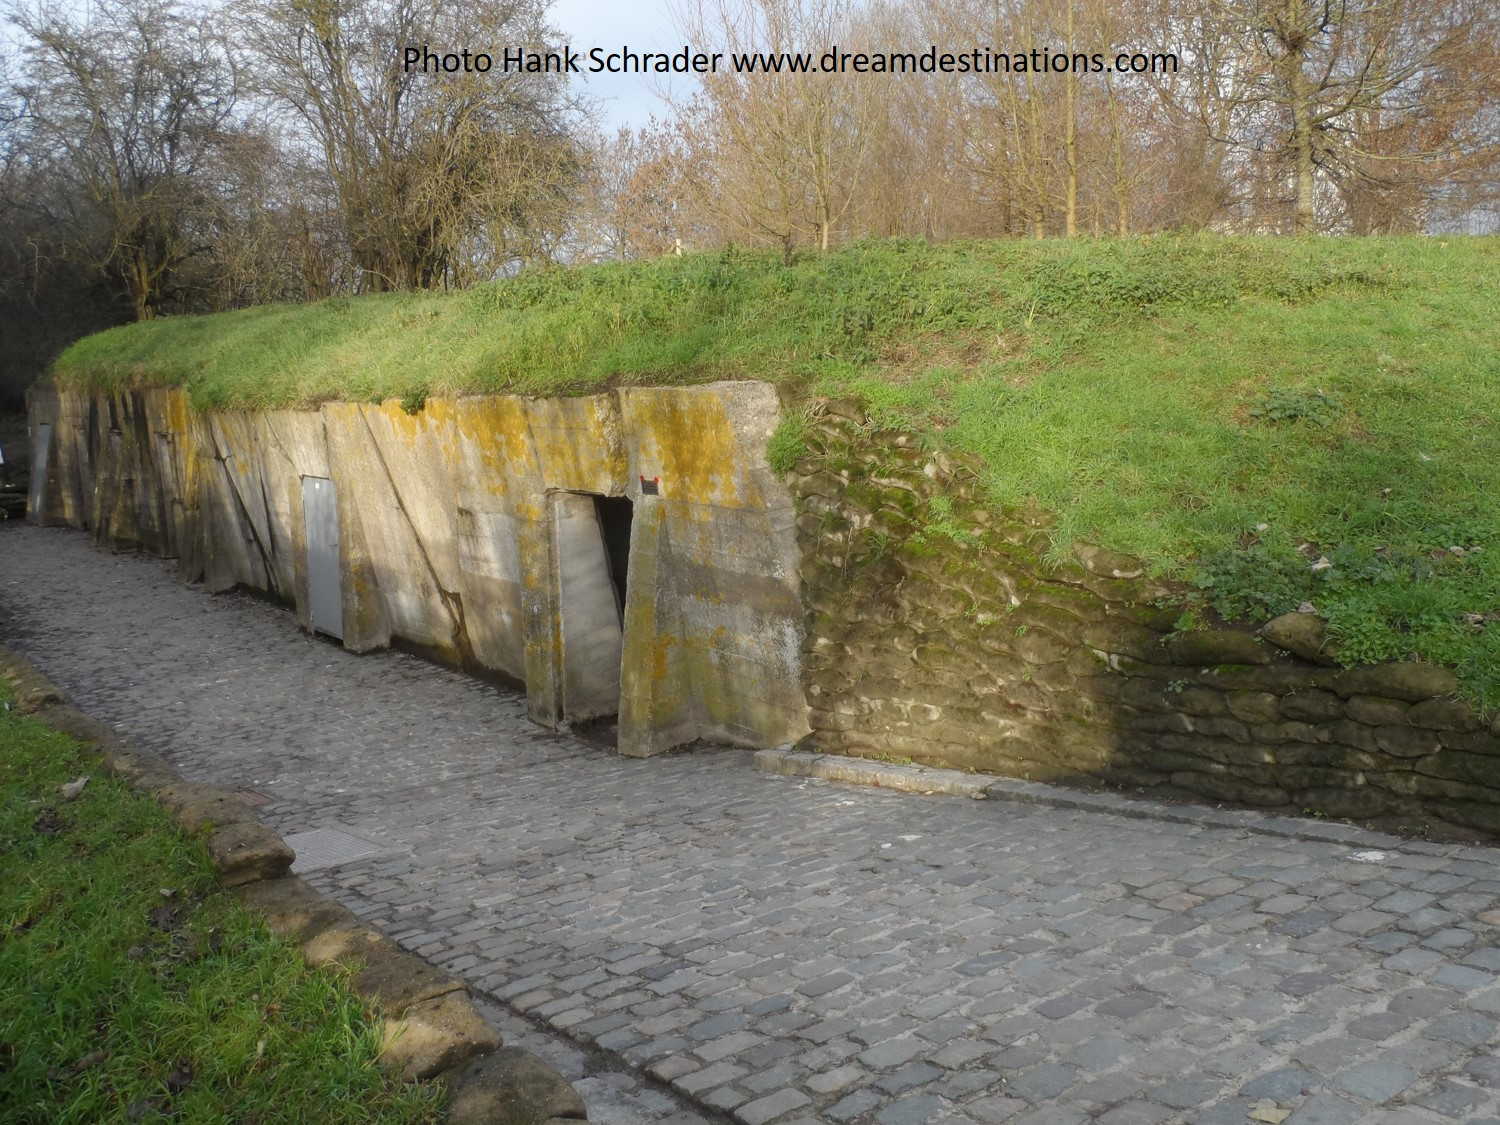 """Concrete shelters of the Advance Dressing Station (A.D.S.) where LTC John McCrae, a doctor, wrote the poem """"In Flanders Field"""""""